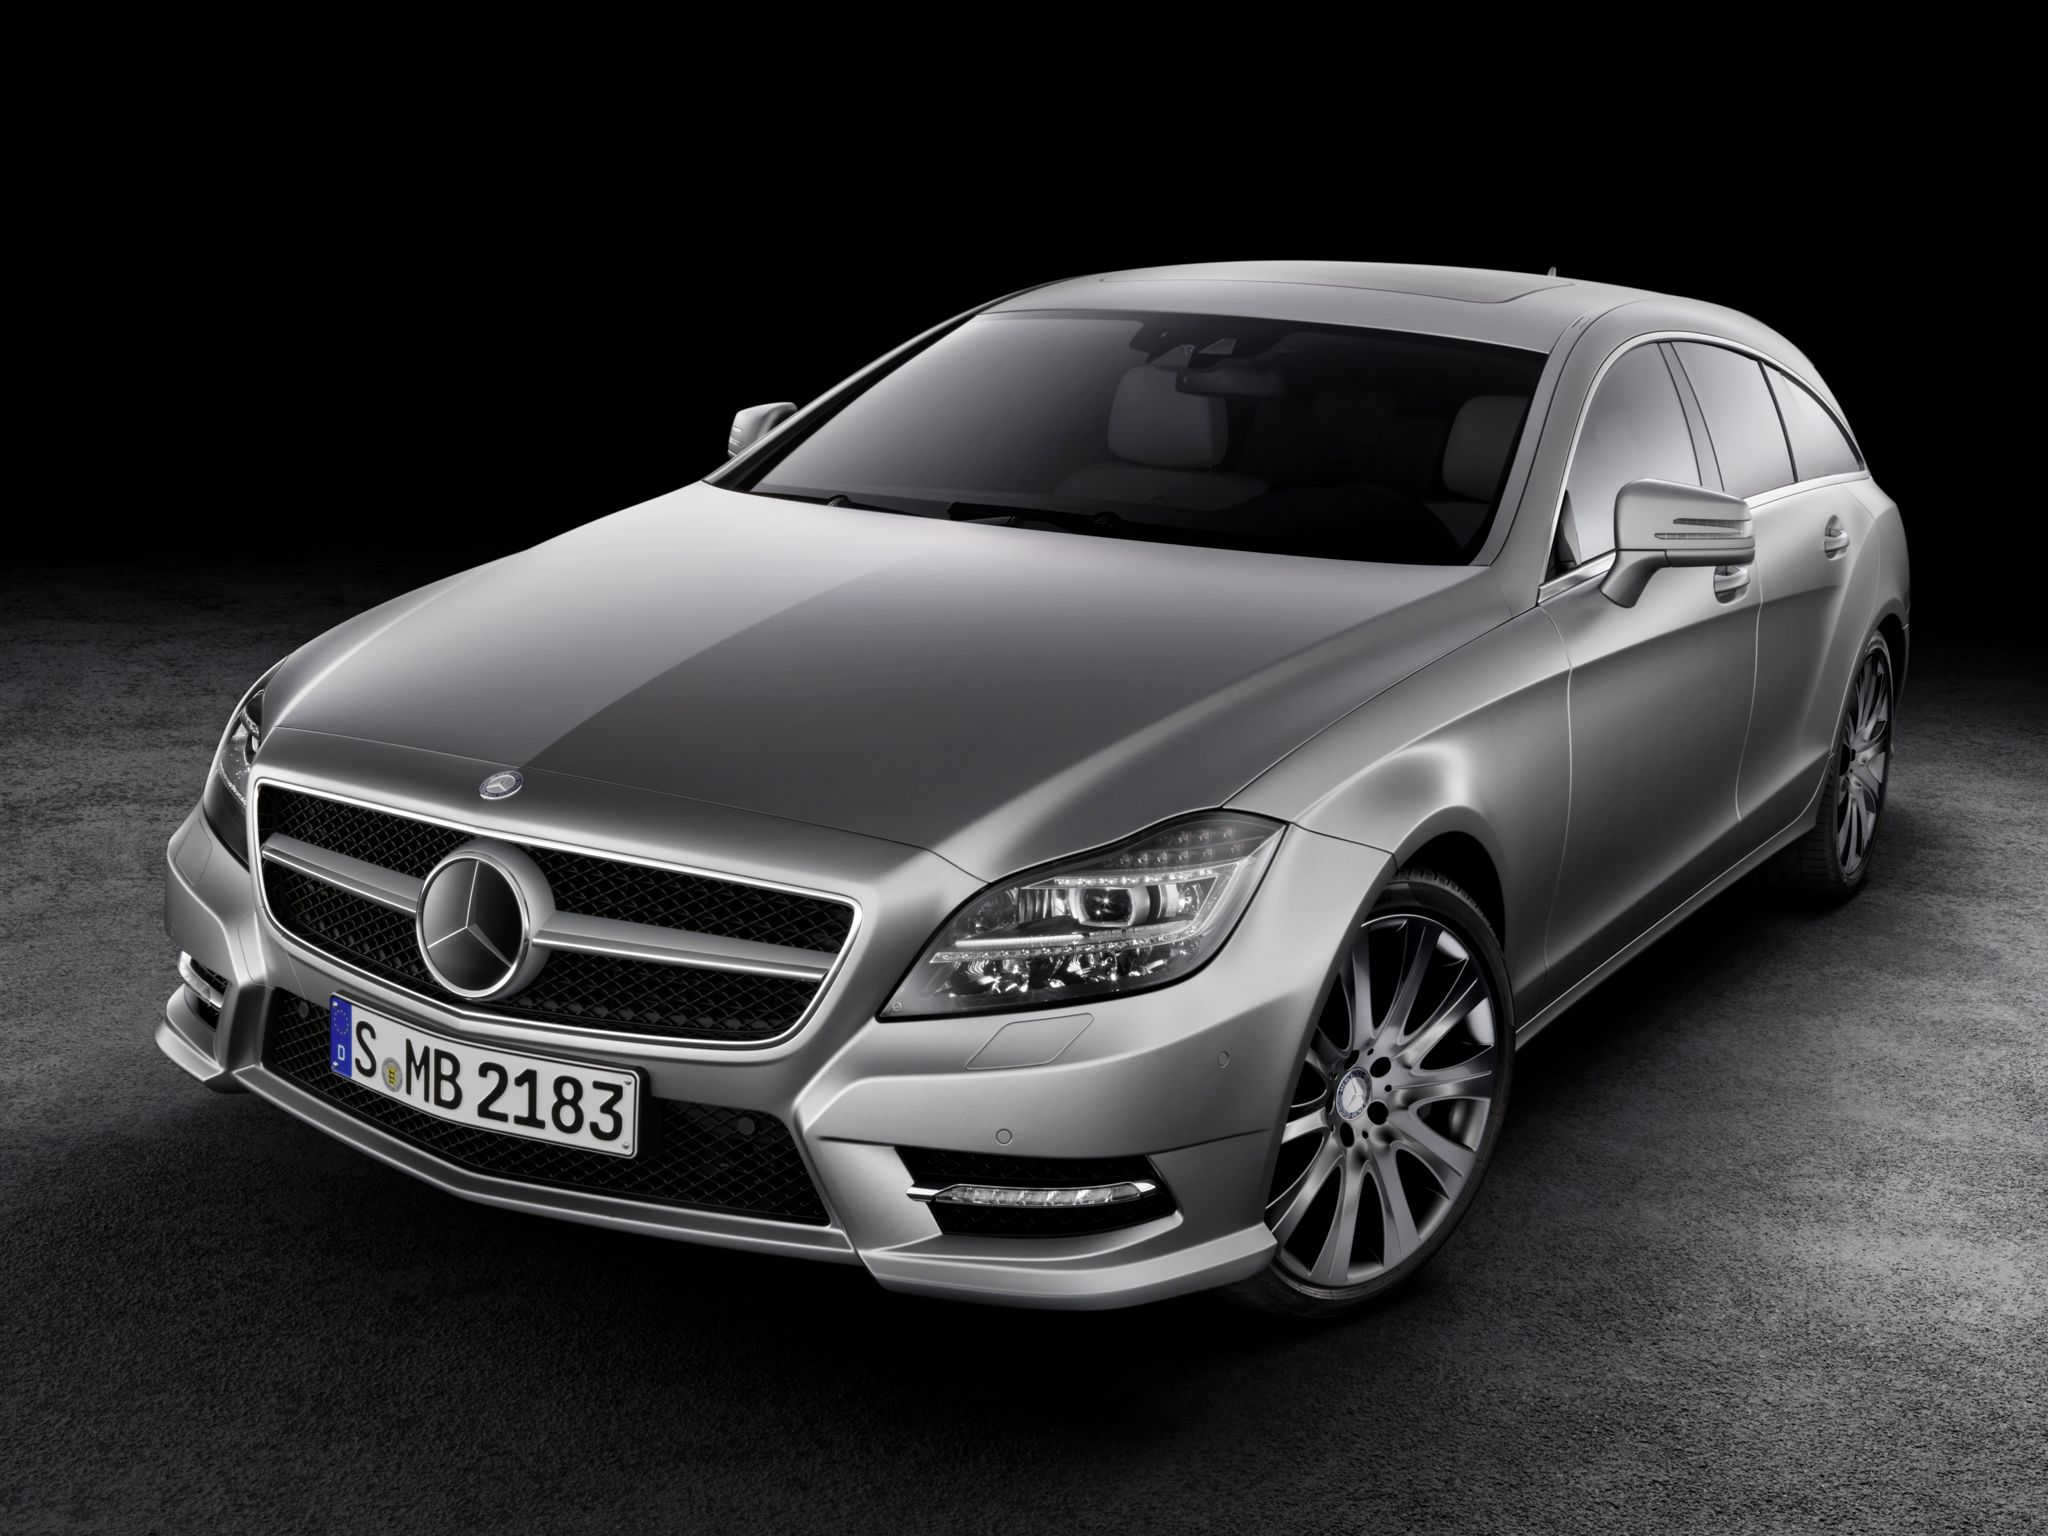 Mercedes CLS Shooting Brake (2013)